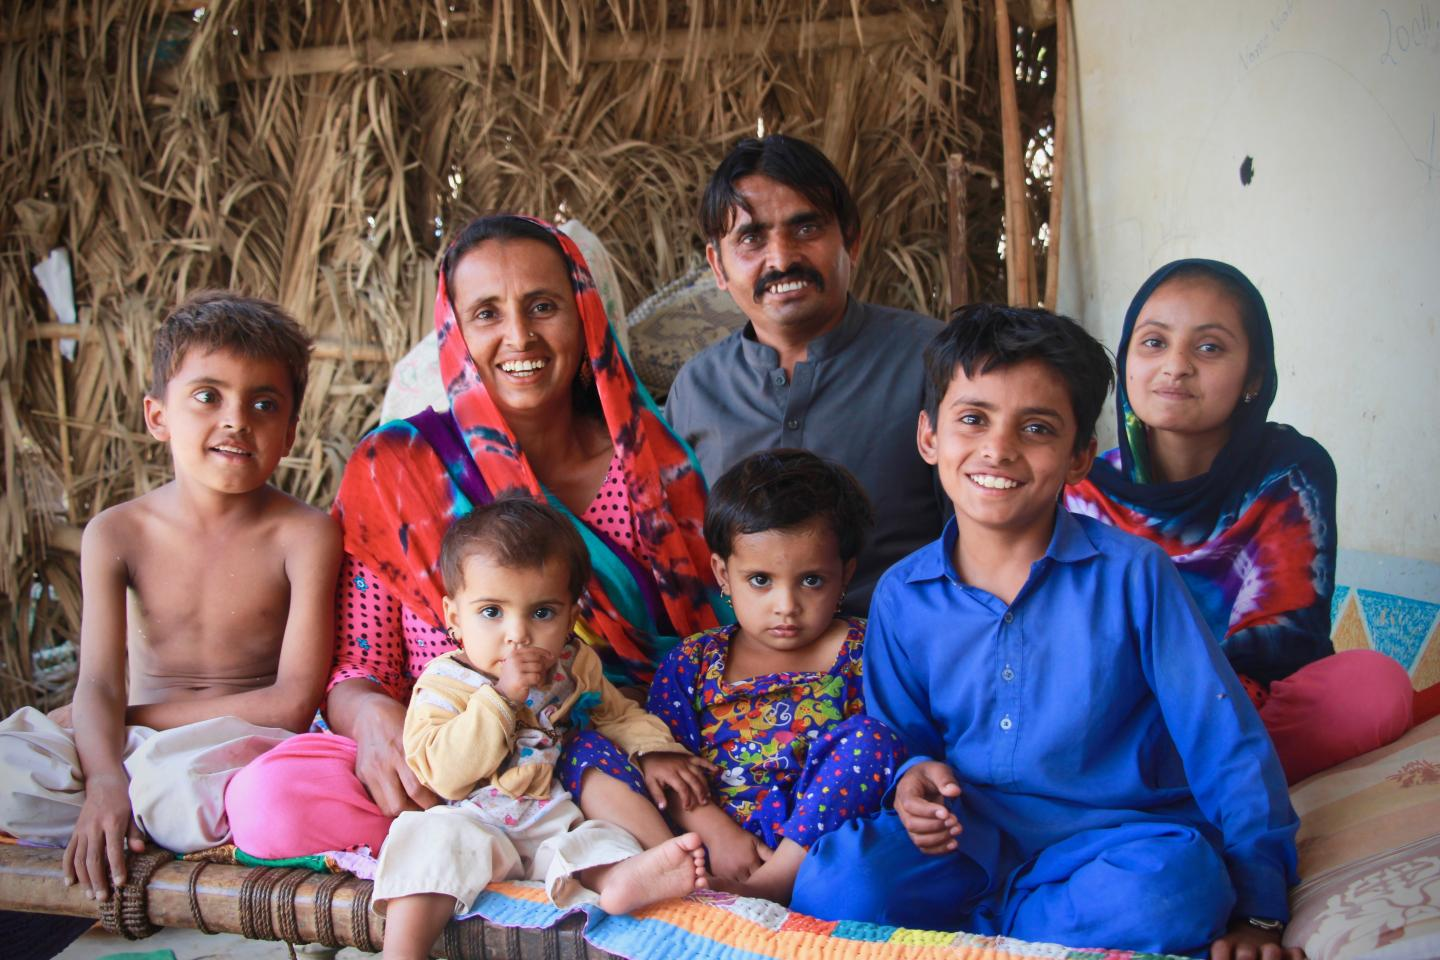 A village family from Sindh province, Pakistan looks at the camera as they enjoy some family time on a hot summer day.